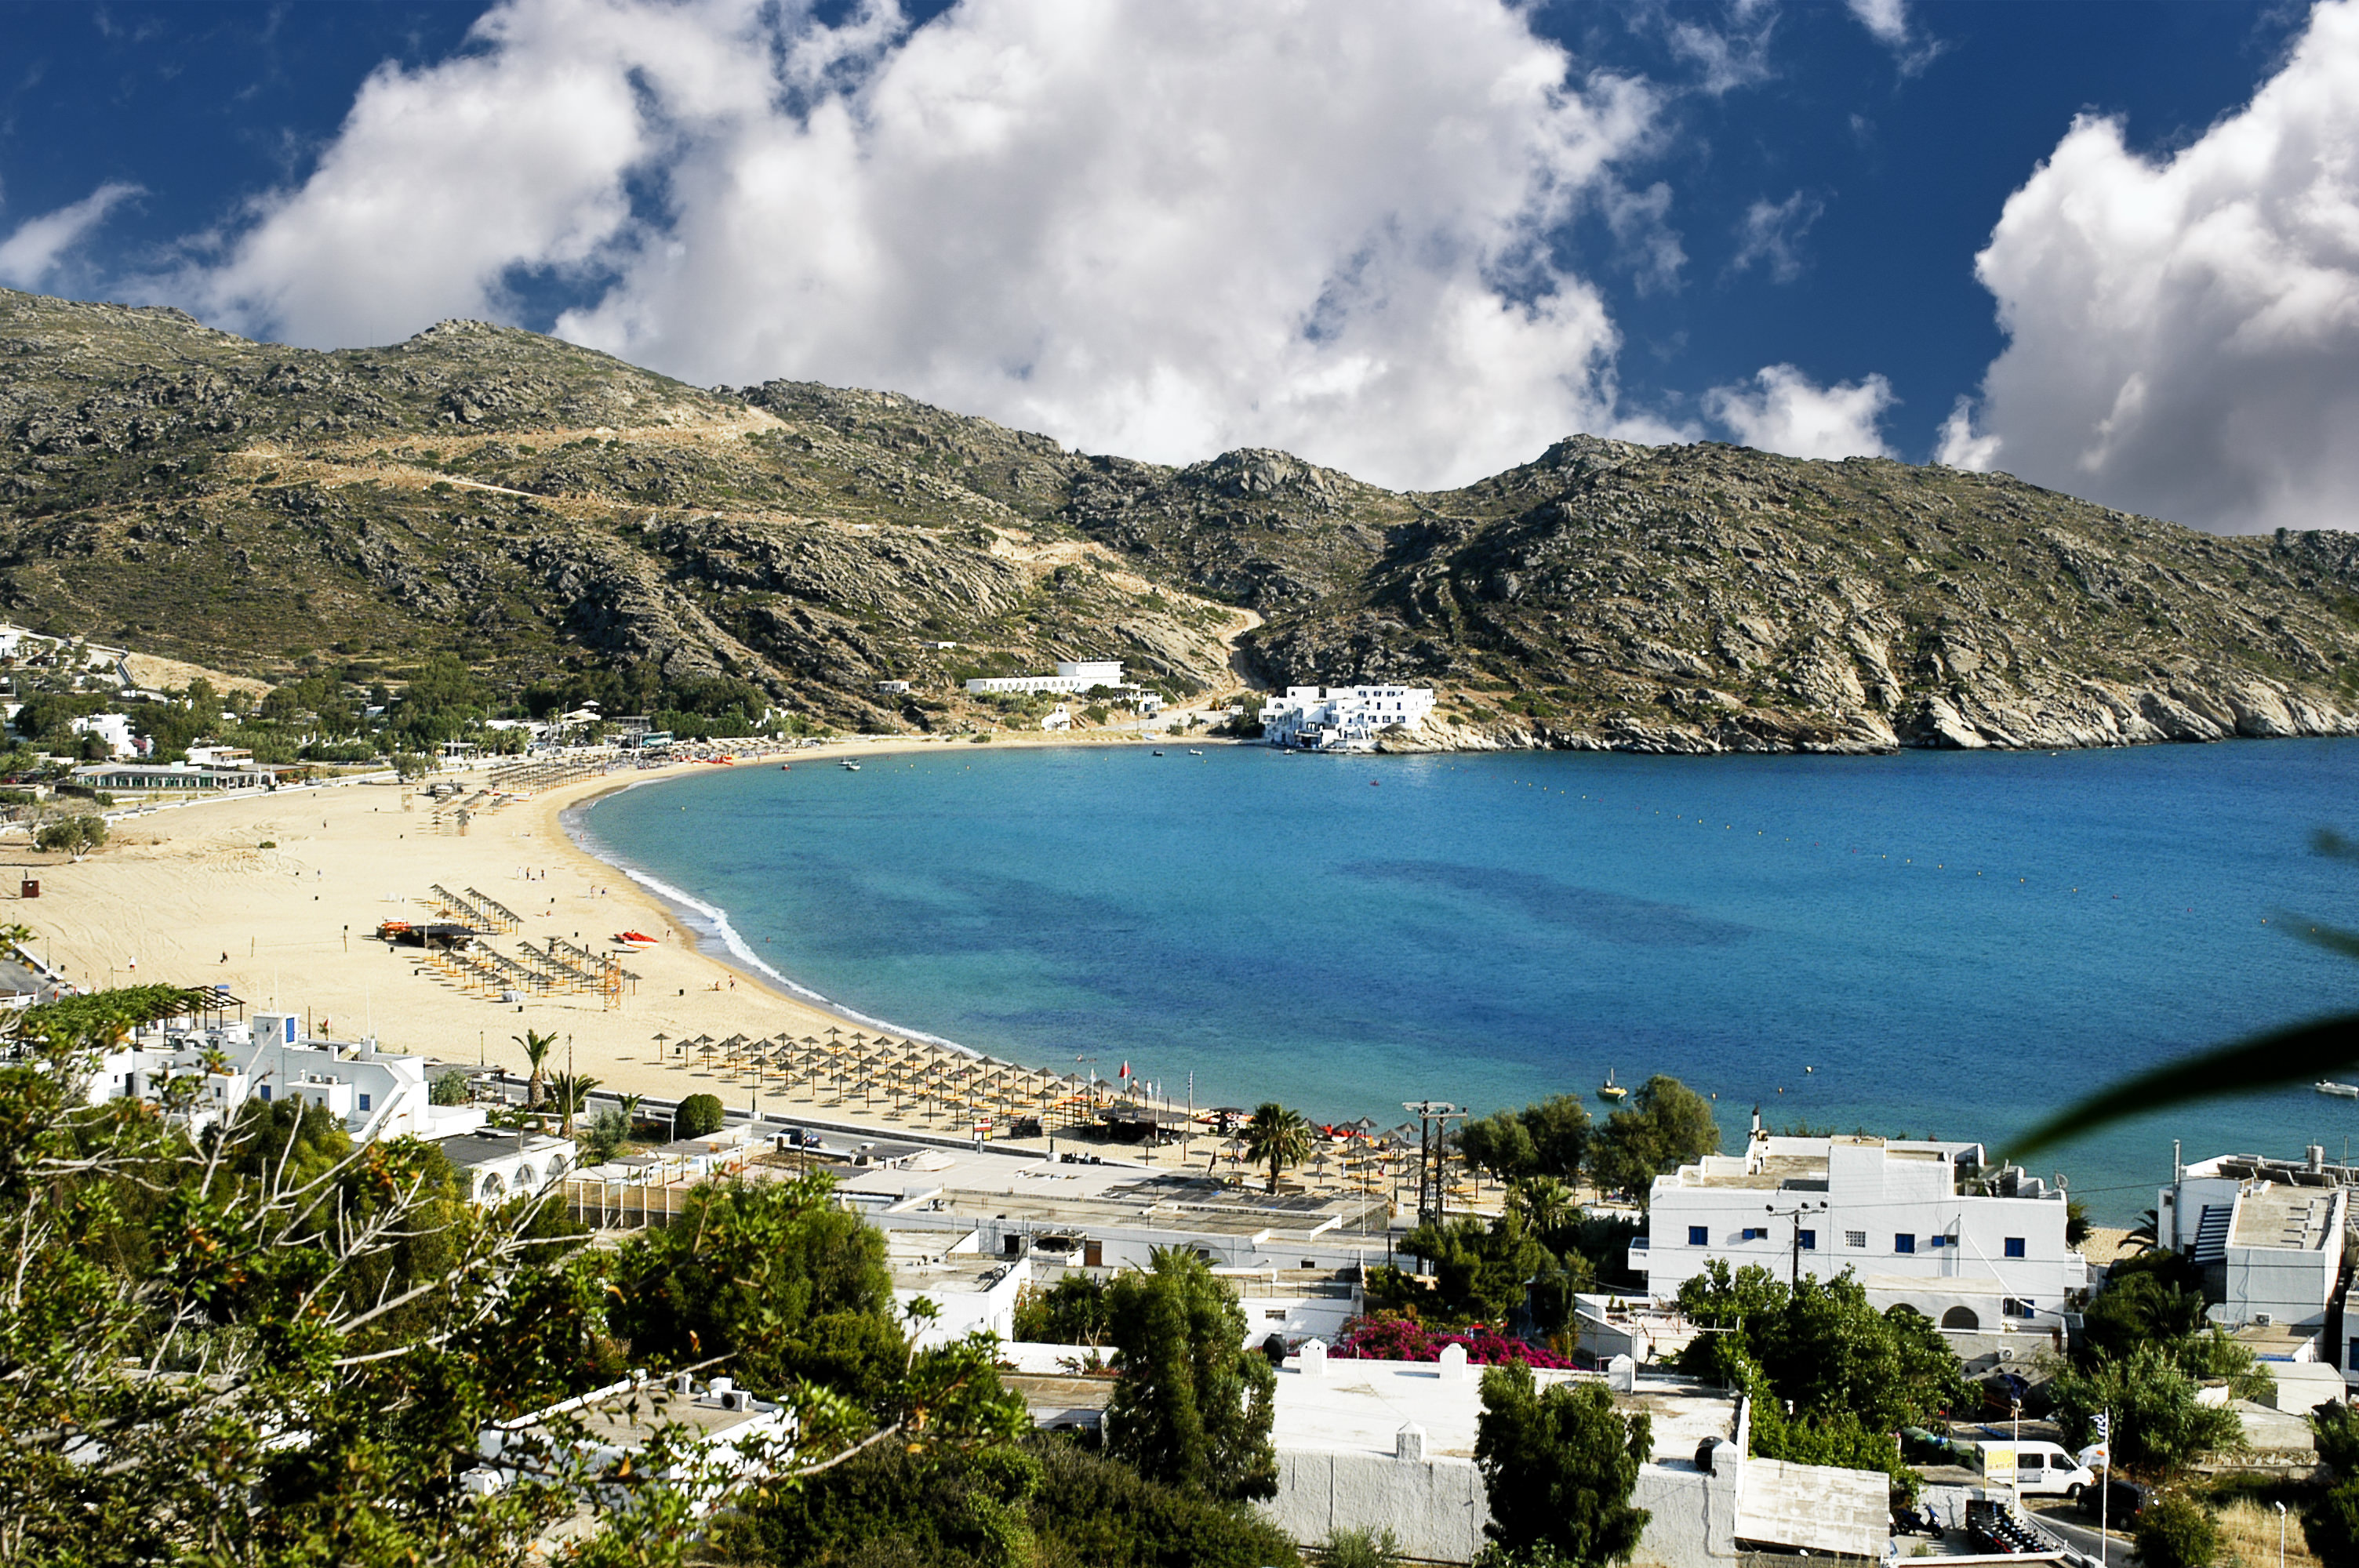 Mylopotas beach, Ios island, Cyclades, Greece